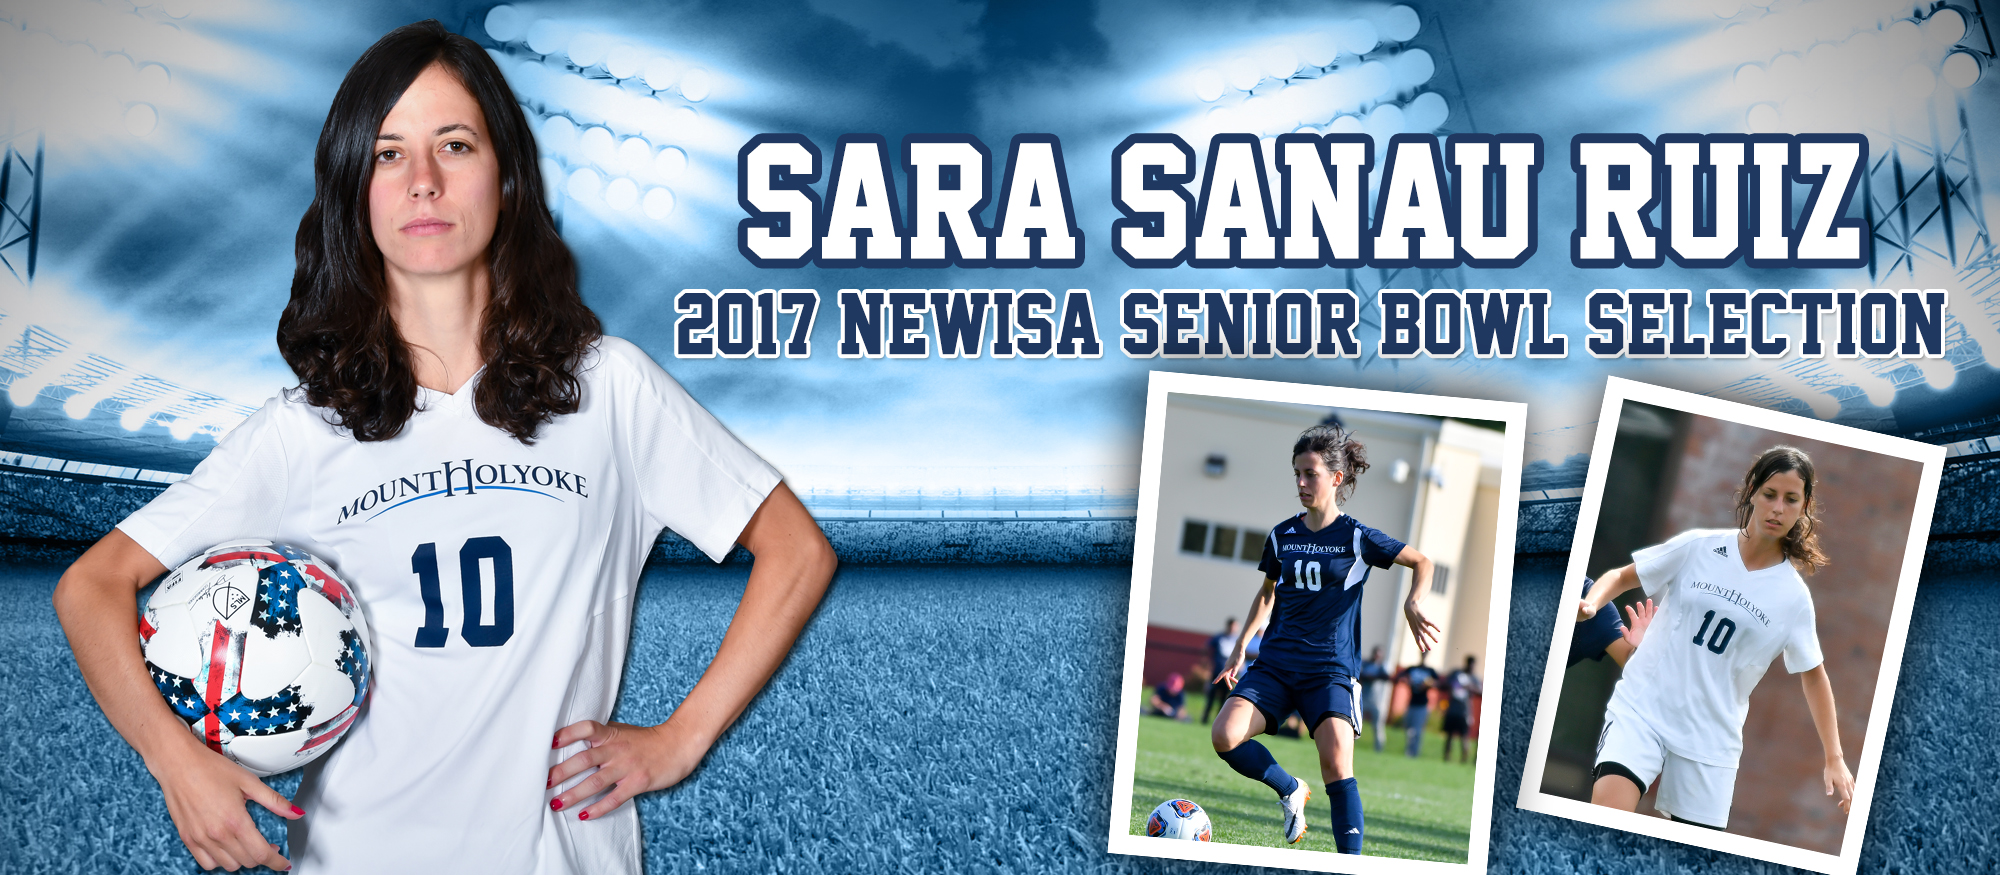 Graphic featuring Lyons soccer player, Sara Sanau Ruiz, who was selected to compete in the New England Women's Intercollegiate Soccer Association Senior Bowl on December 3rd.